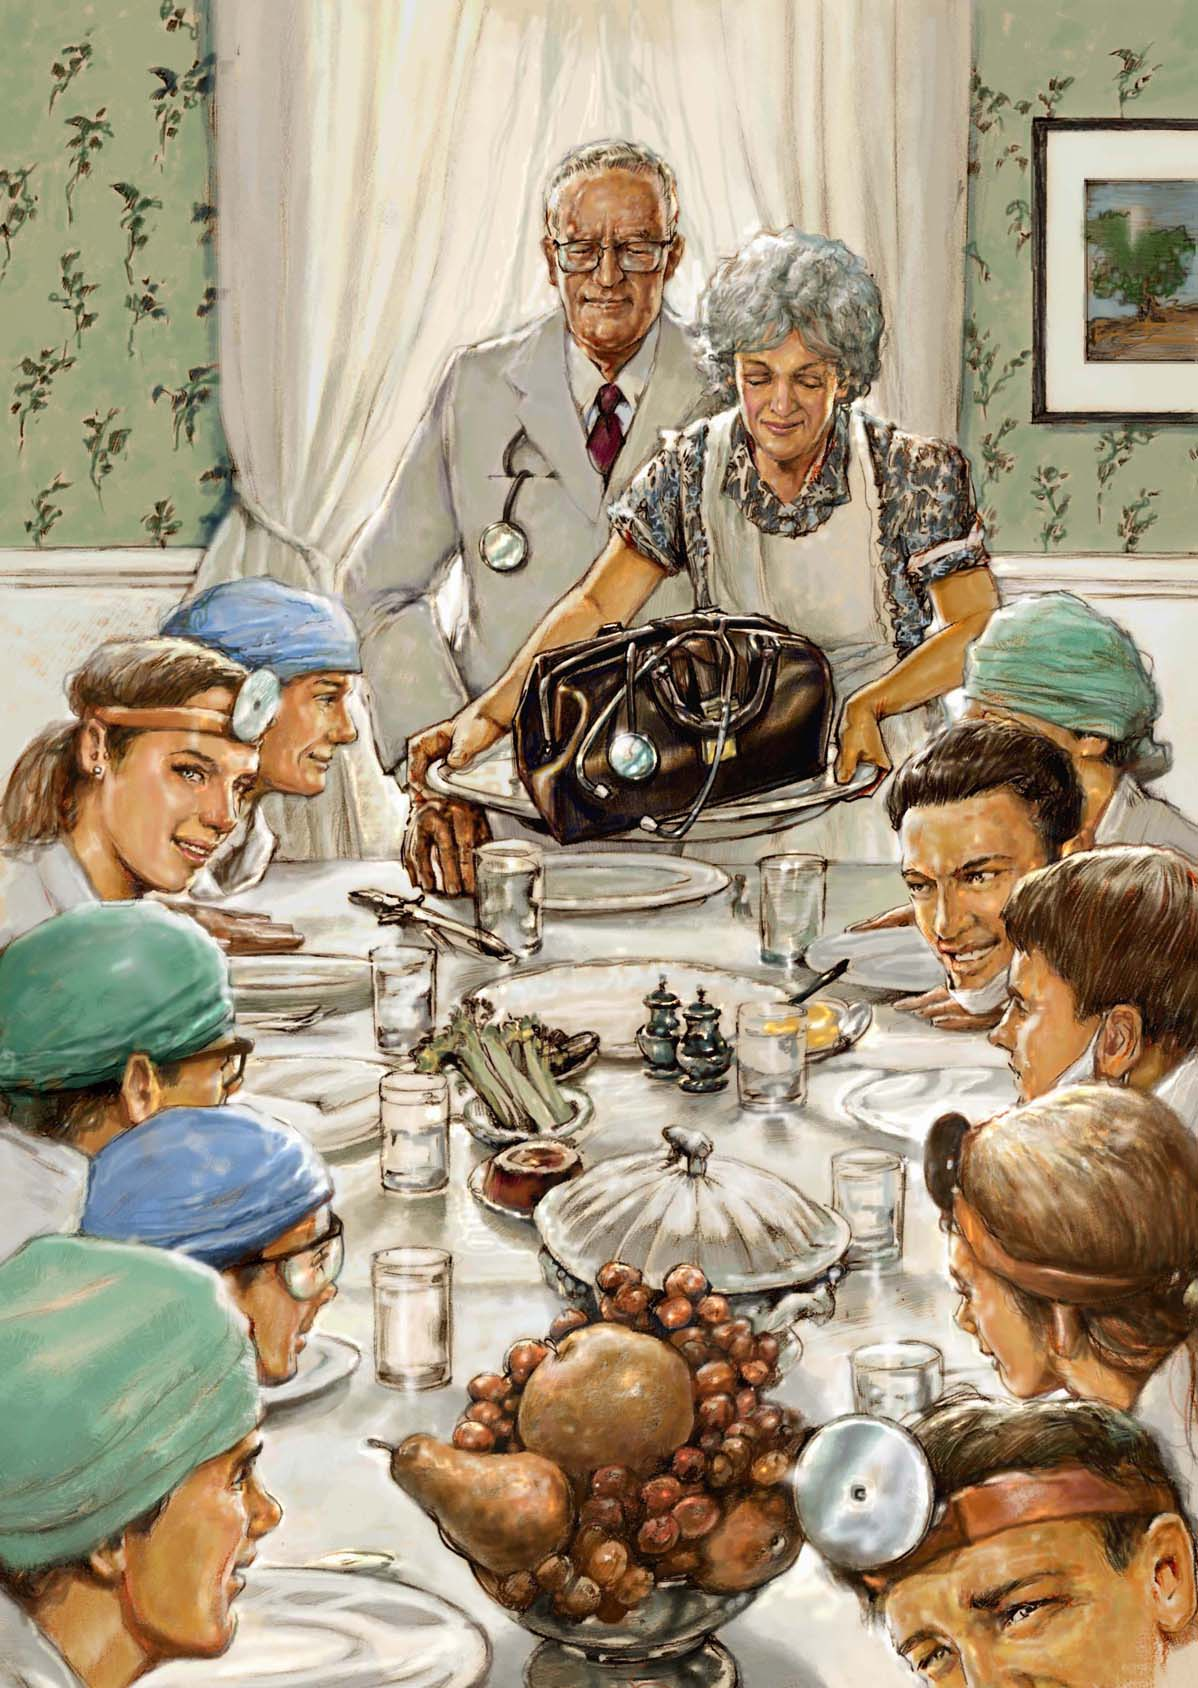 Thanksgiving Family Dinner Painting | www.topsimages.com